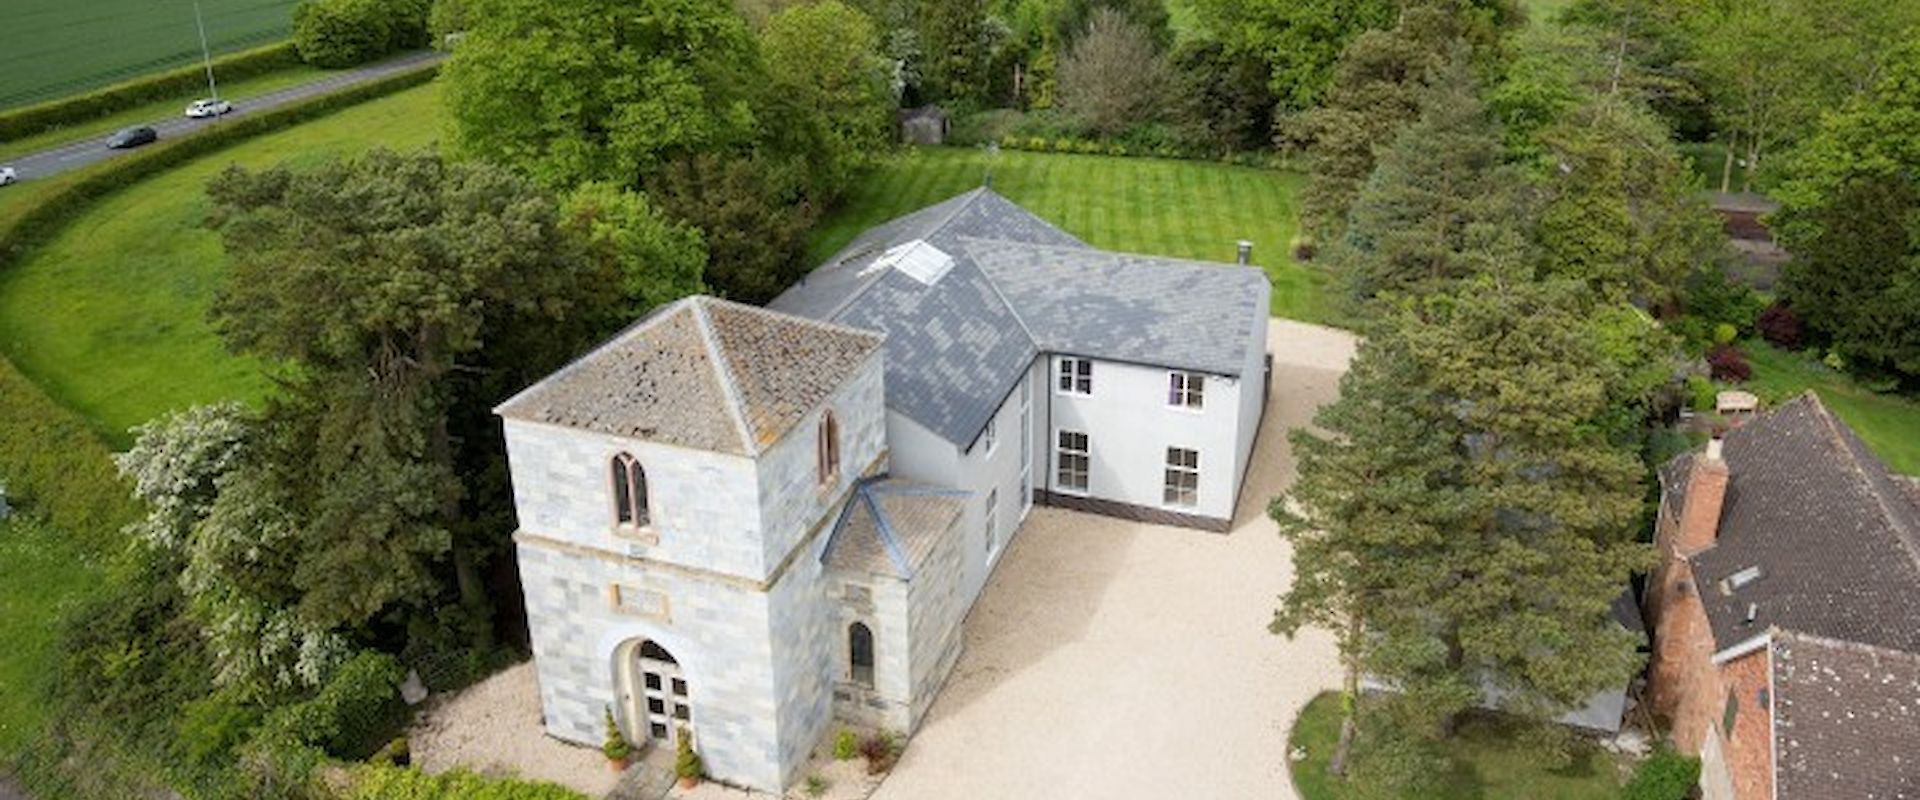 Detached House in Ettington<